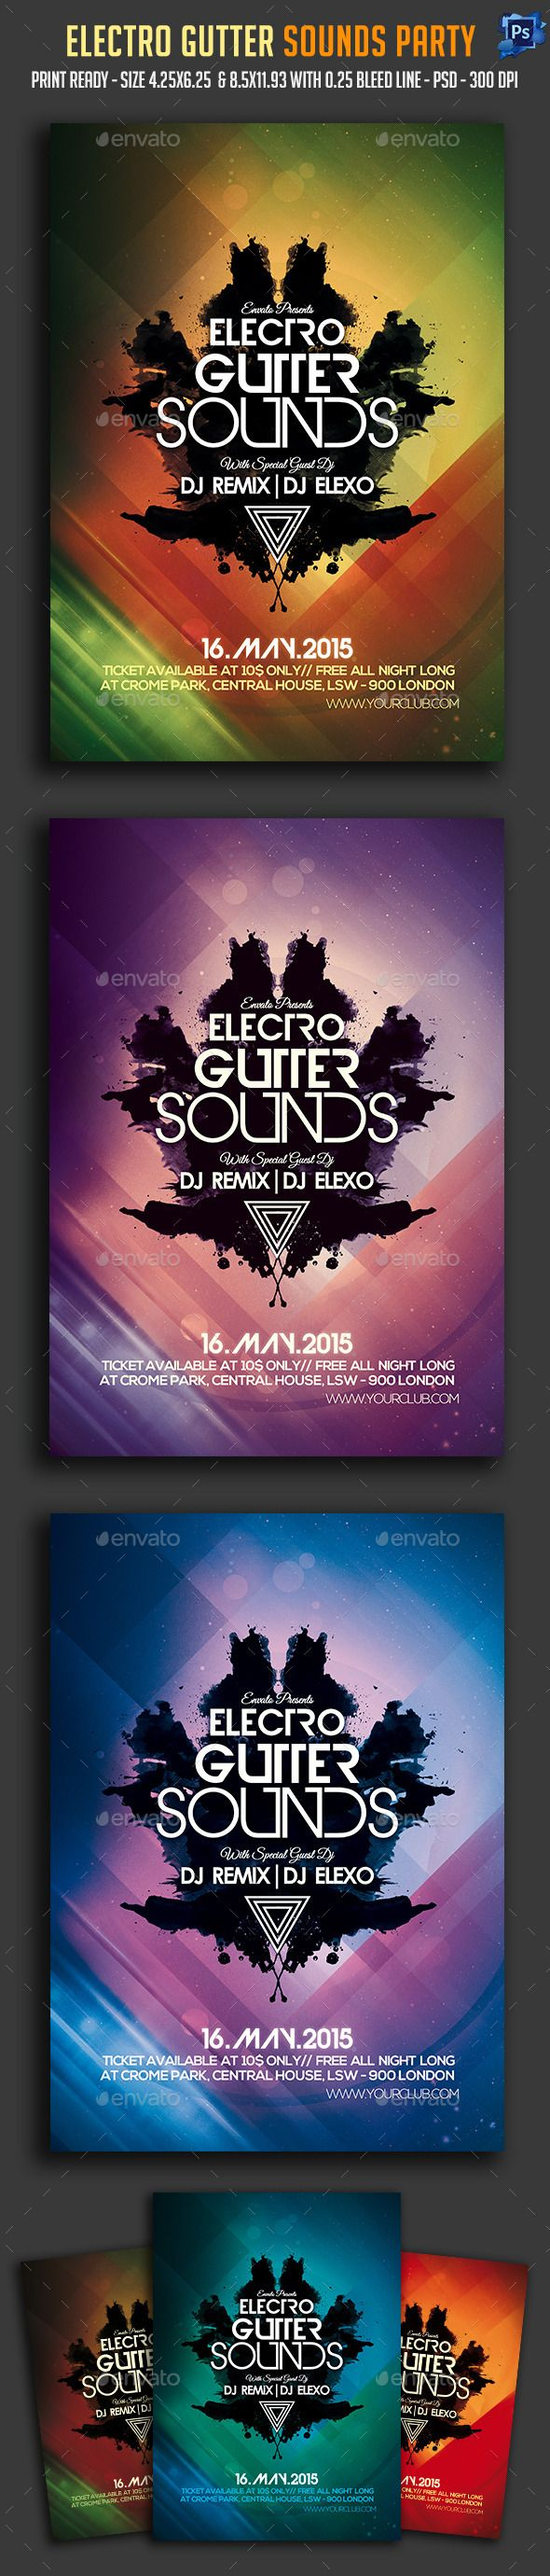 Electro Gutter Sounds Party Flyer